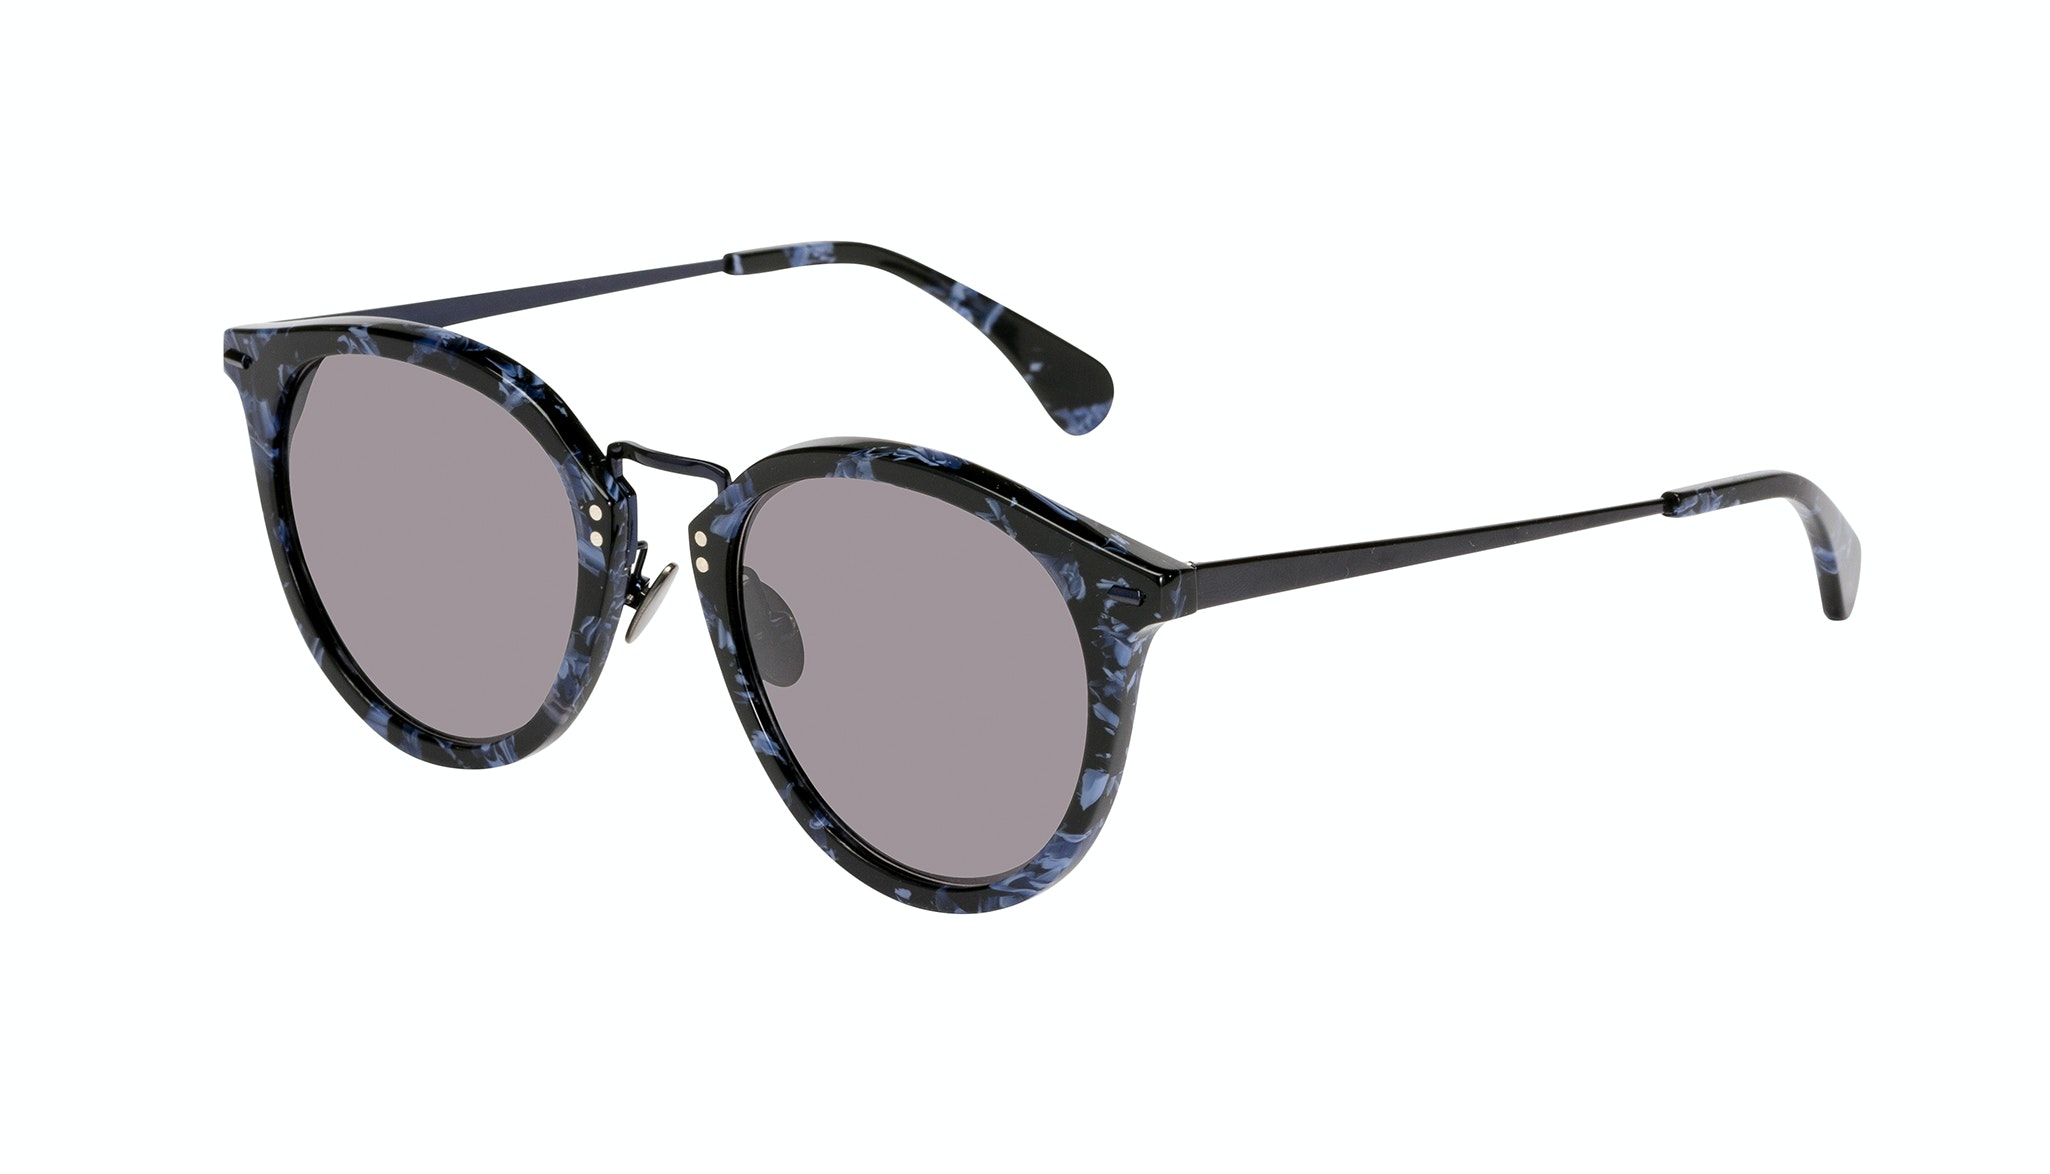 Affordable Fashion Glasses Round Sunglasses Women Poppy Rey Tilt